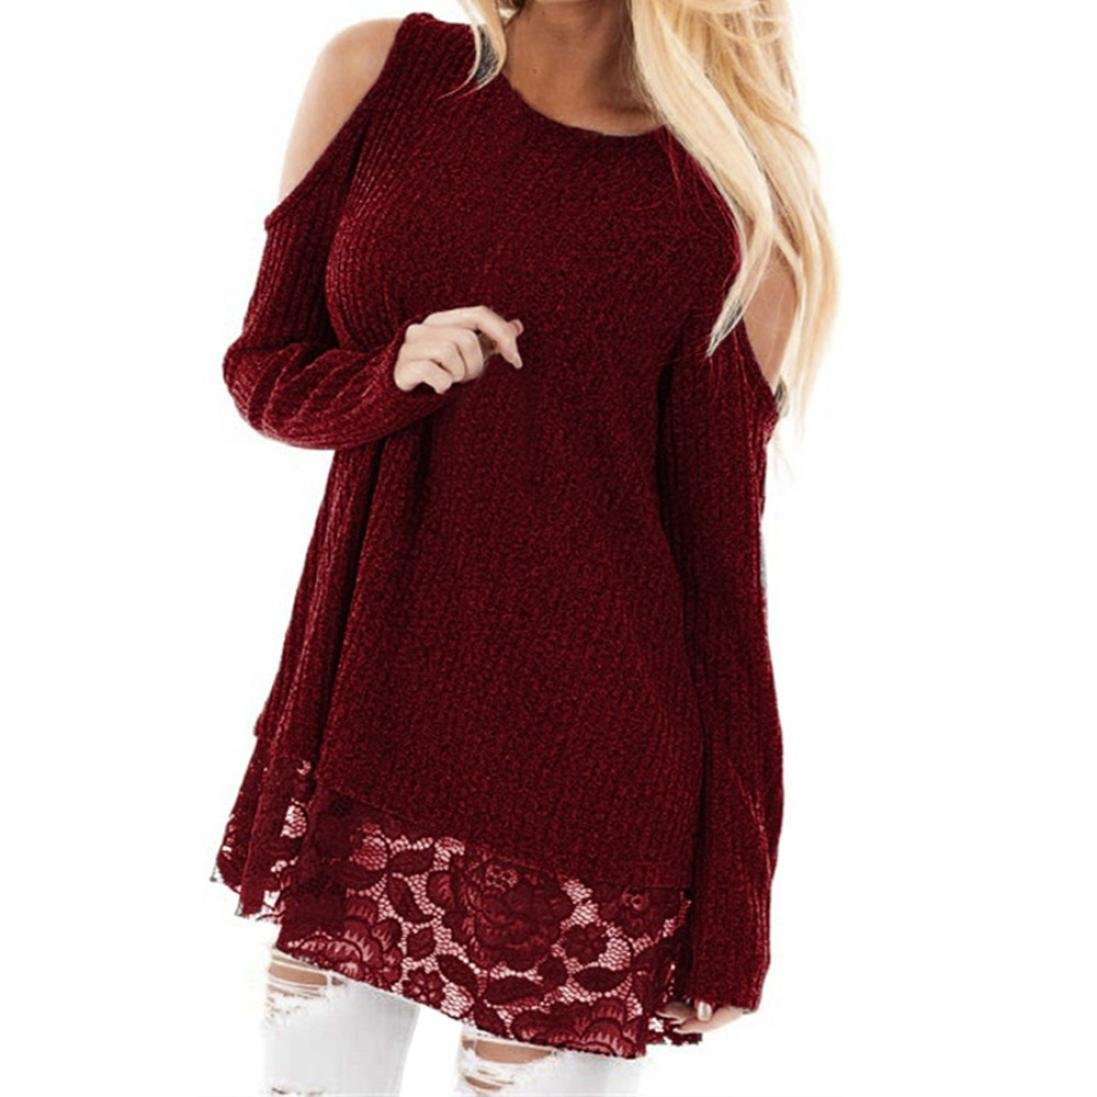 Clearance!Hot sale! Women Plus Size Round Neck Blouse Long Sleeve Cold Shoulder Lace Patchwork Blouse Tops (XL, Wine Red)